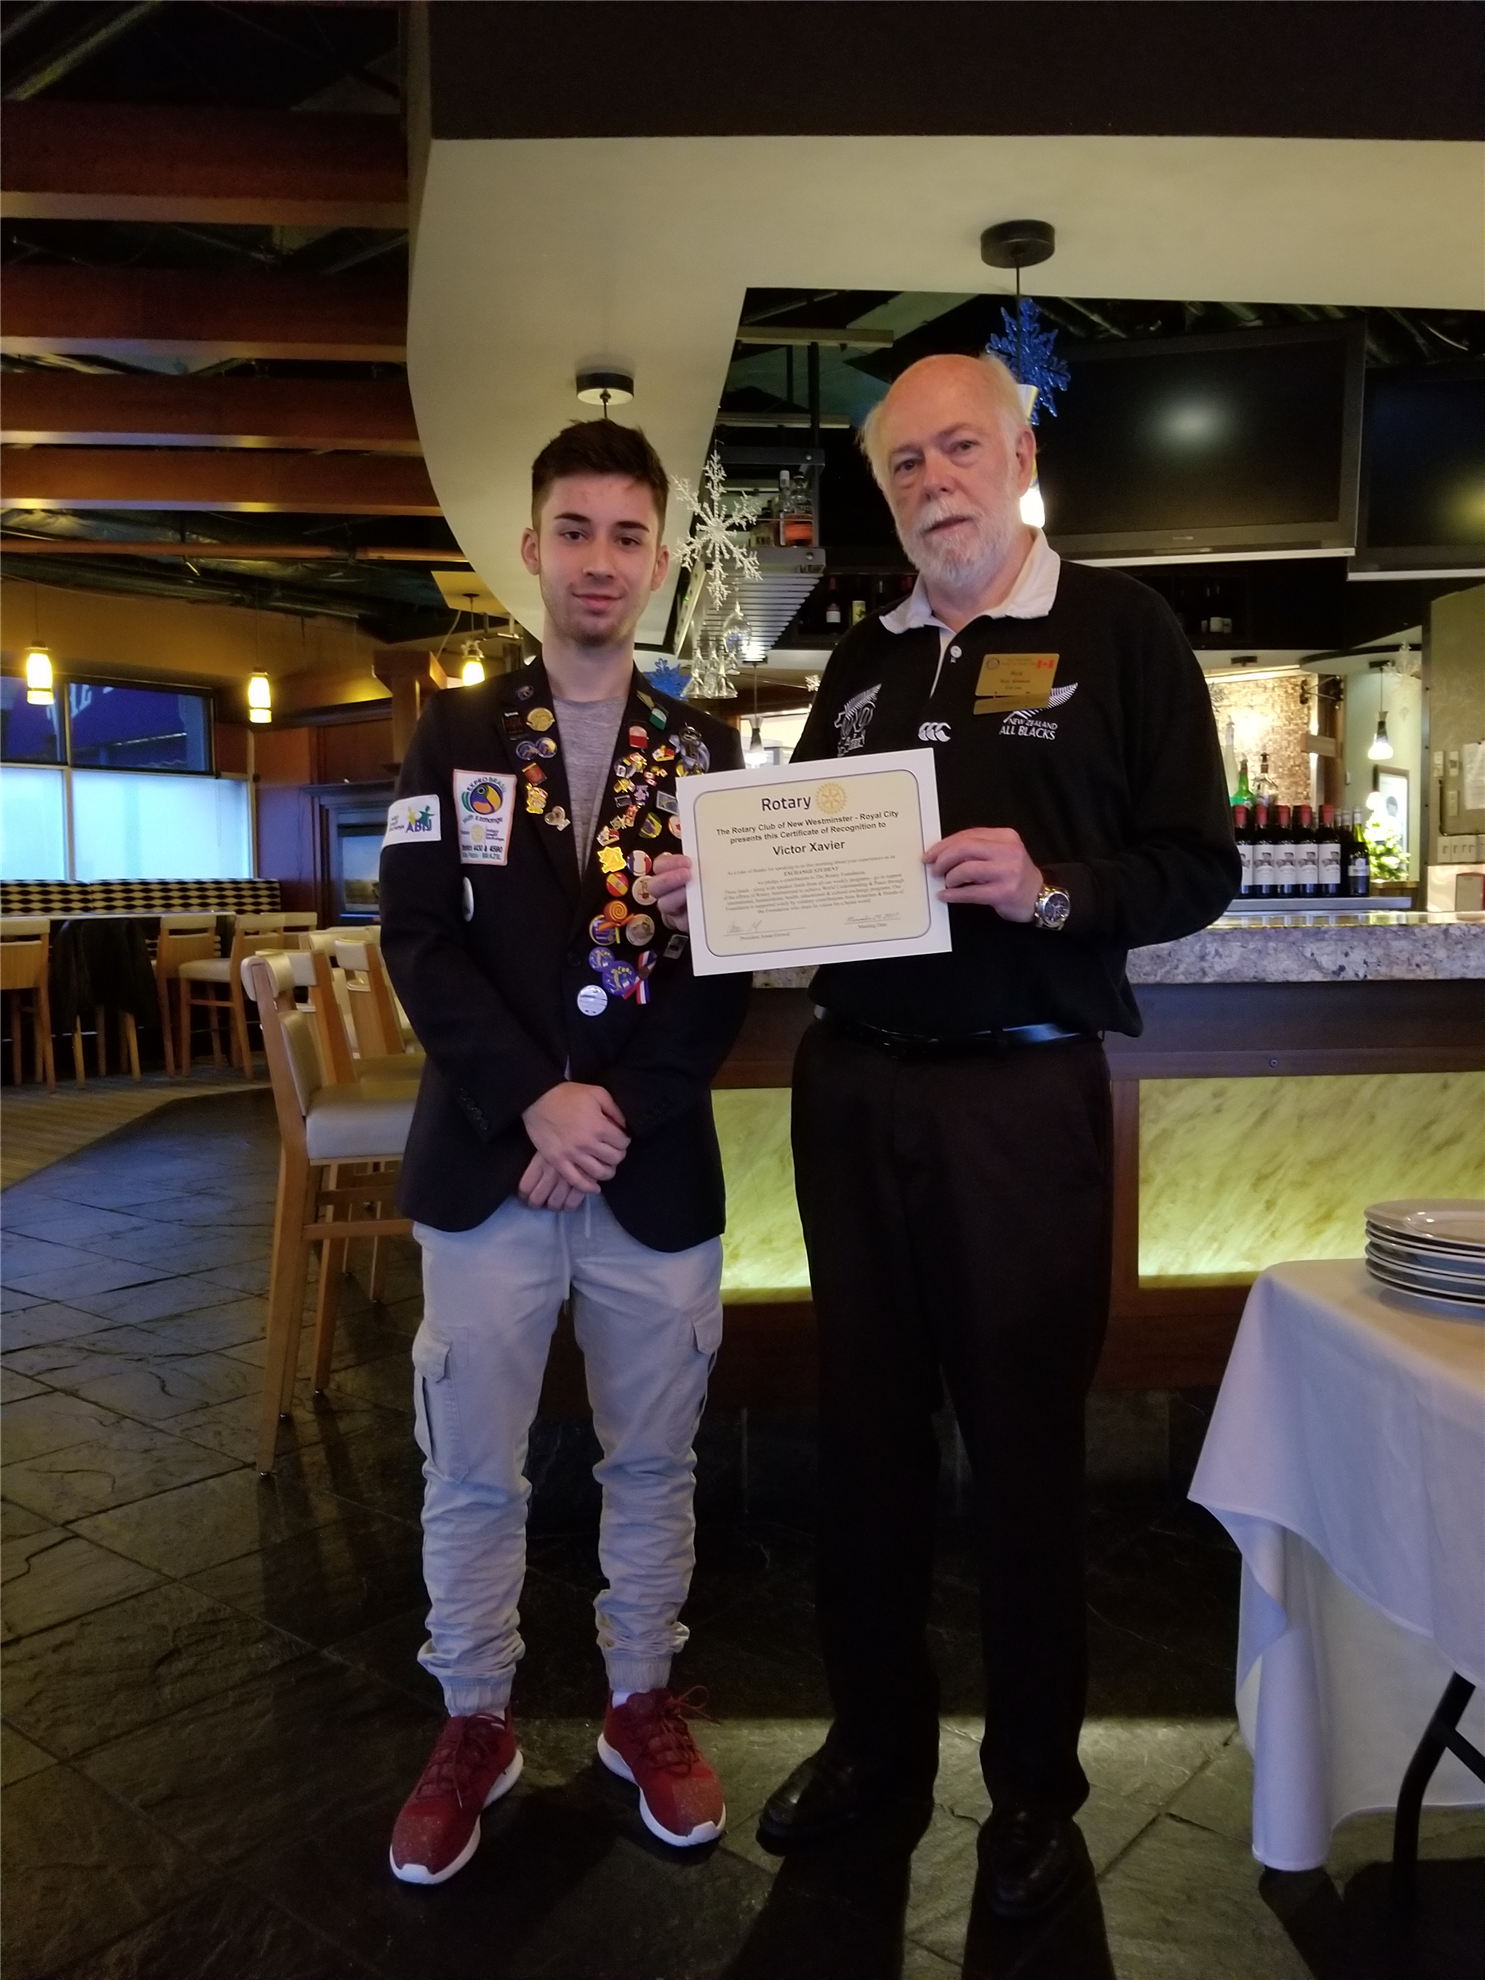 Stories Rotary Club Of New Westminster Royal City X8 Kendrick T Shirt Size S Rick Thanks Victor For His Presentation About Brazil And Family